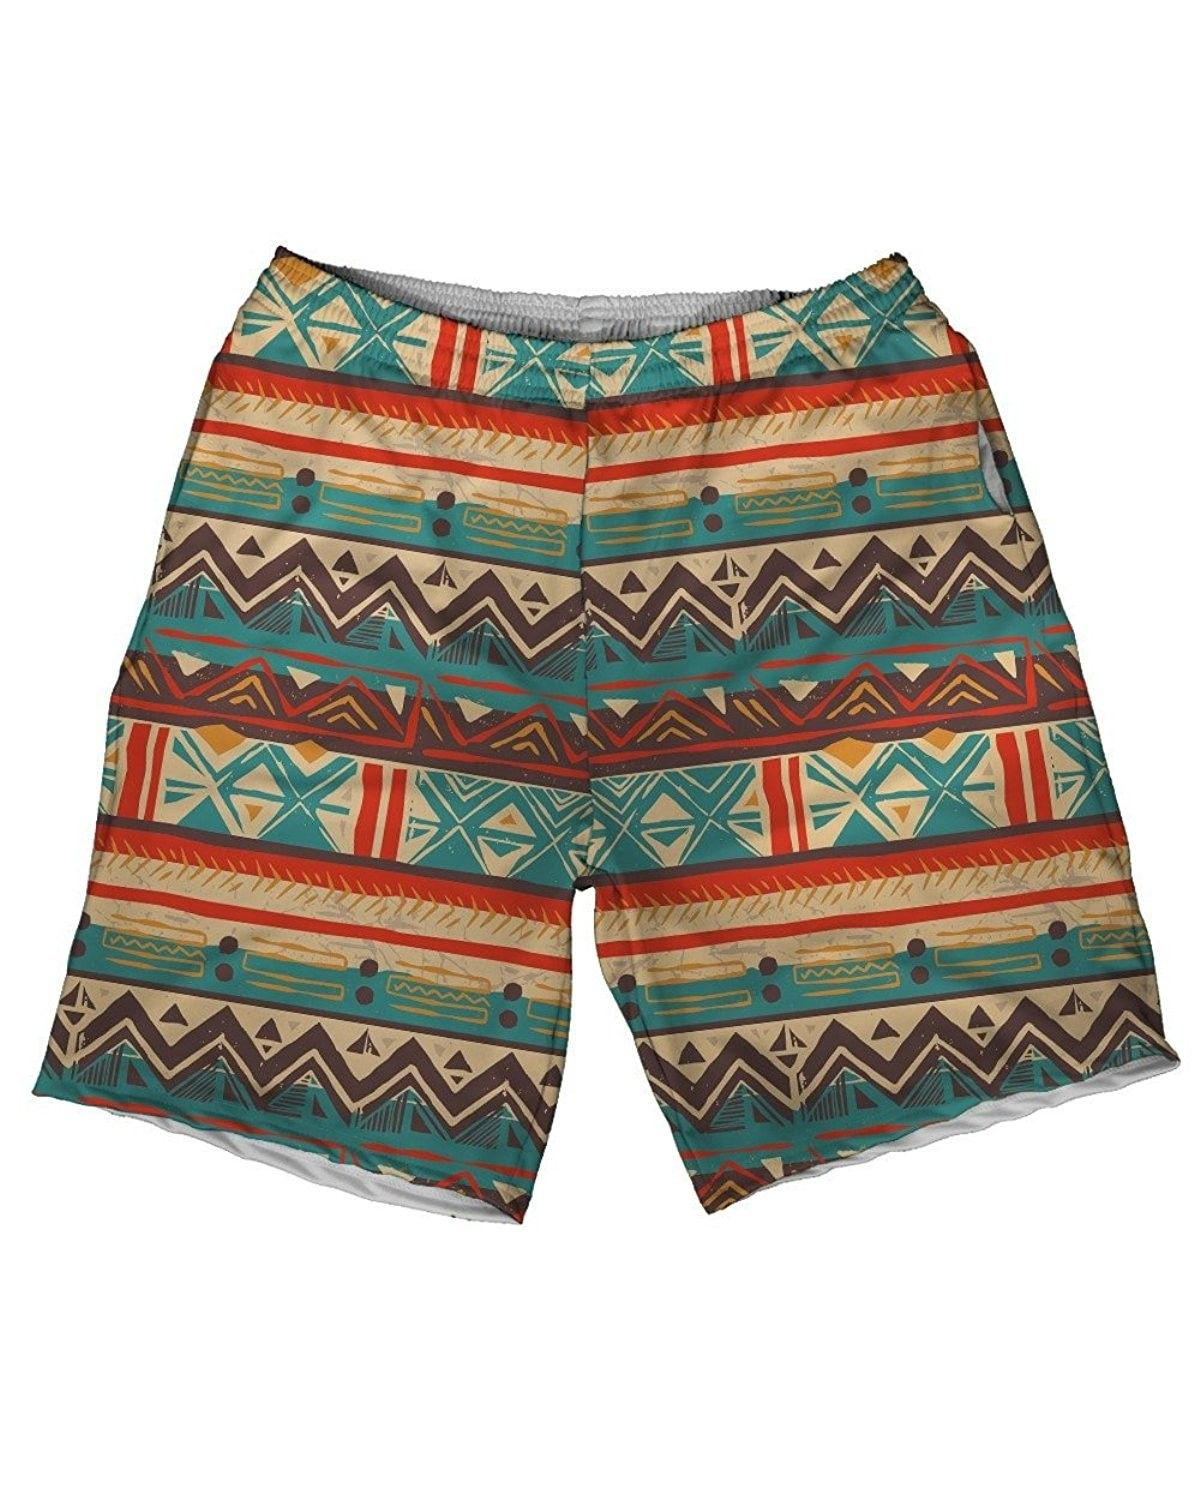 4a85f4e2ca Desert Tribal Athletic Shorts- Men's Board Shorts For Basketball- Swim- Gym-  Workout - CE127OD7NOD - Men's Clothing, Shorts #Shorts #Men's #Clothing # #  ...